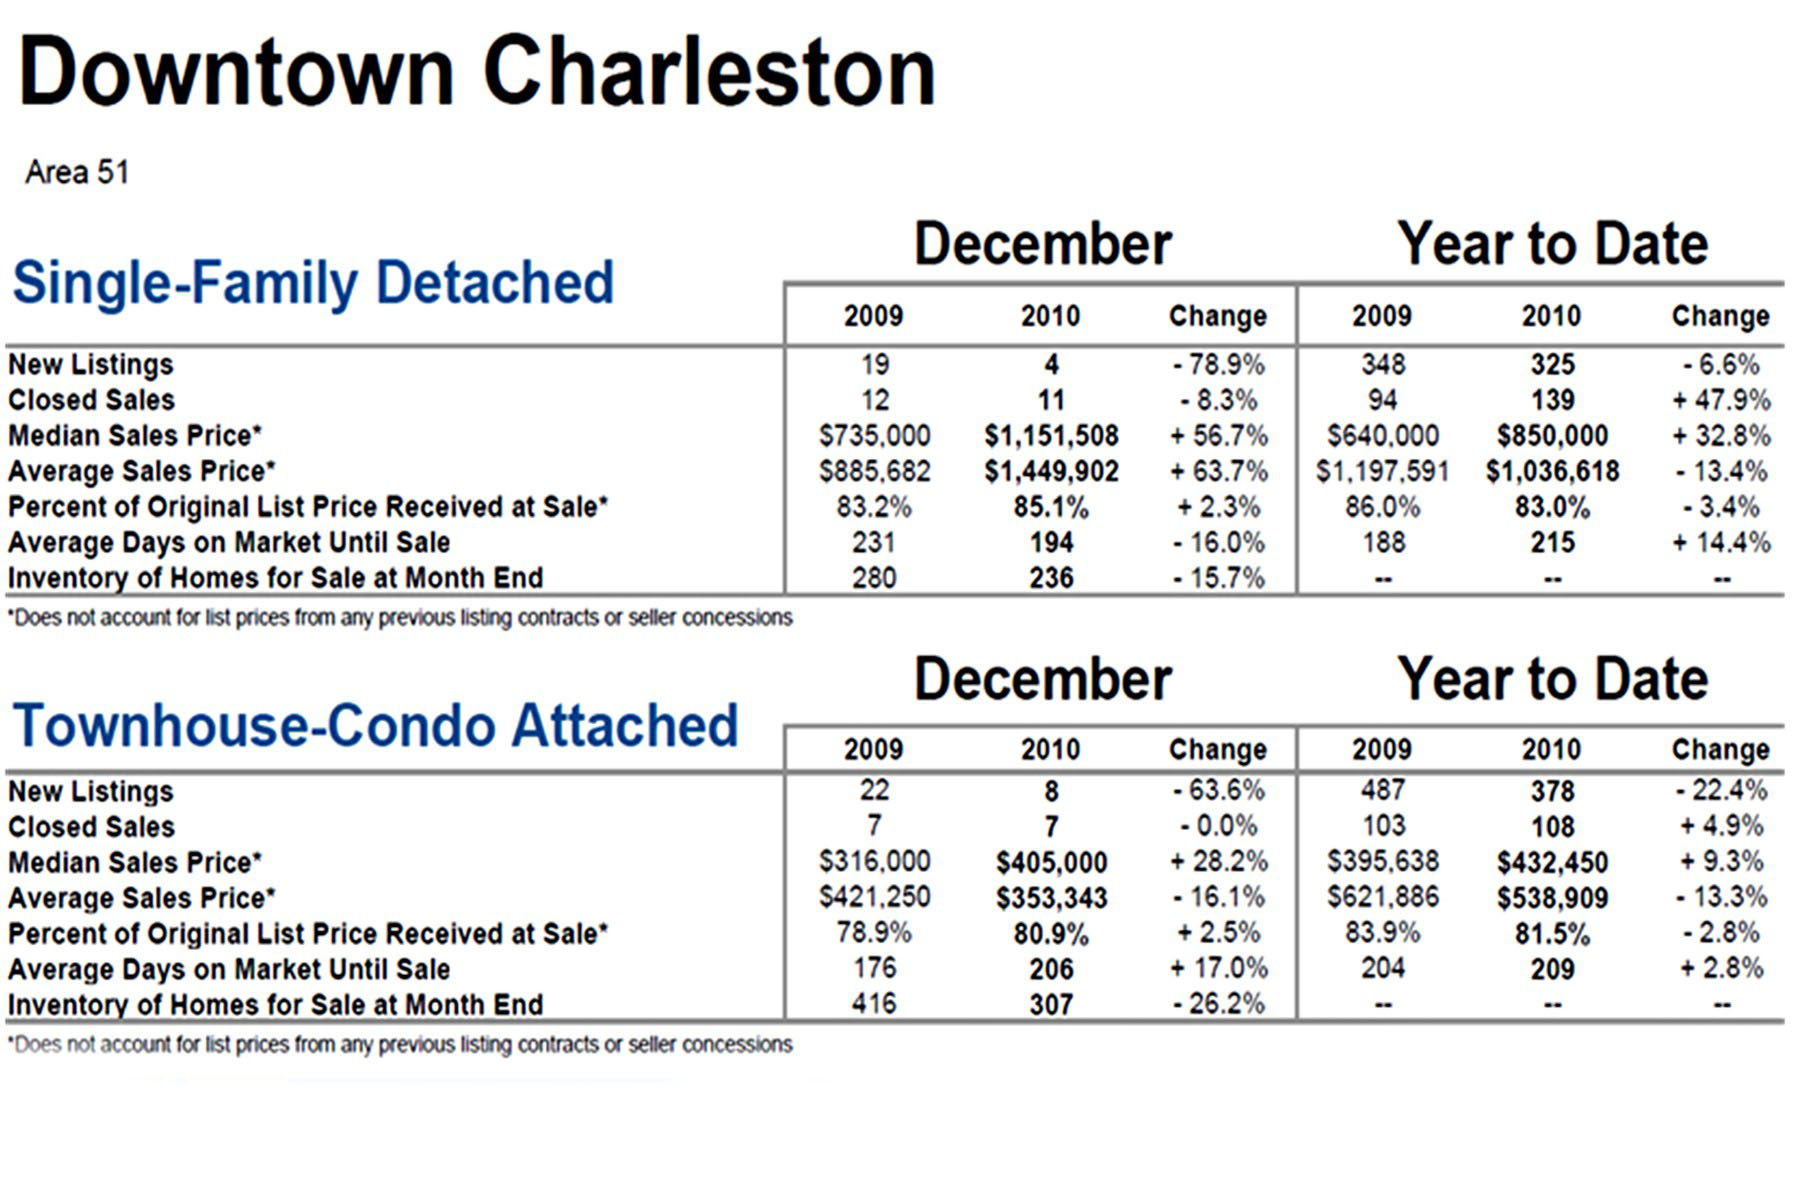 Charleston, SC Area 51 Market Update Dec. 2010